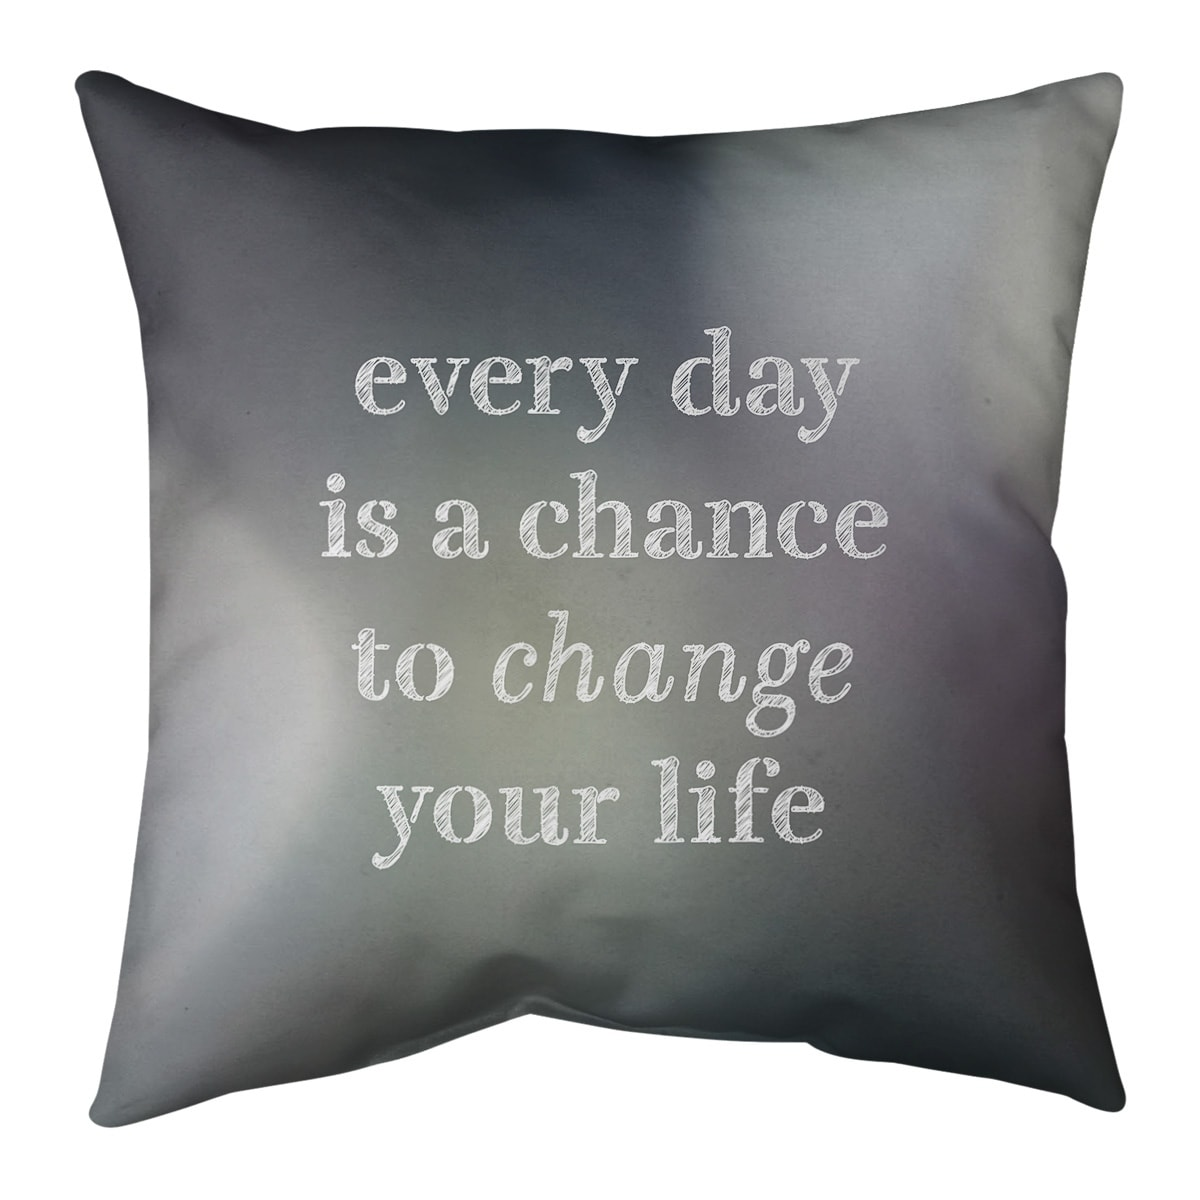 Quotes Multicolor Background Change Your Life Quote Pillow Spun Polyester Overstock 30307503